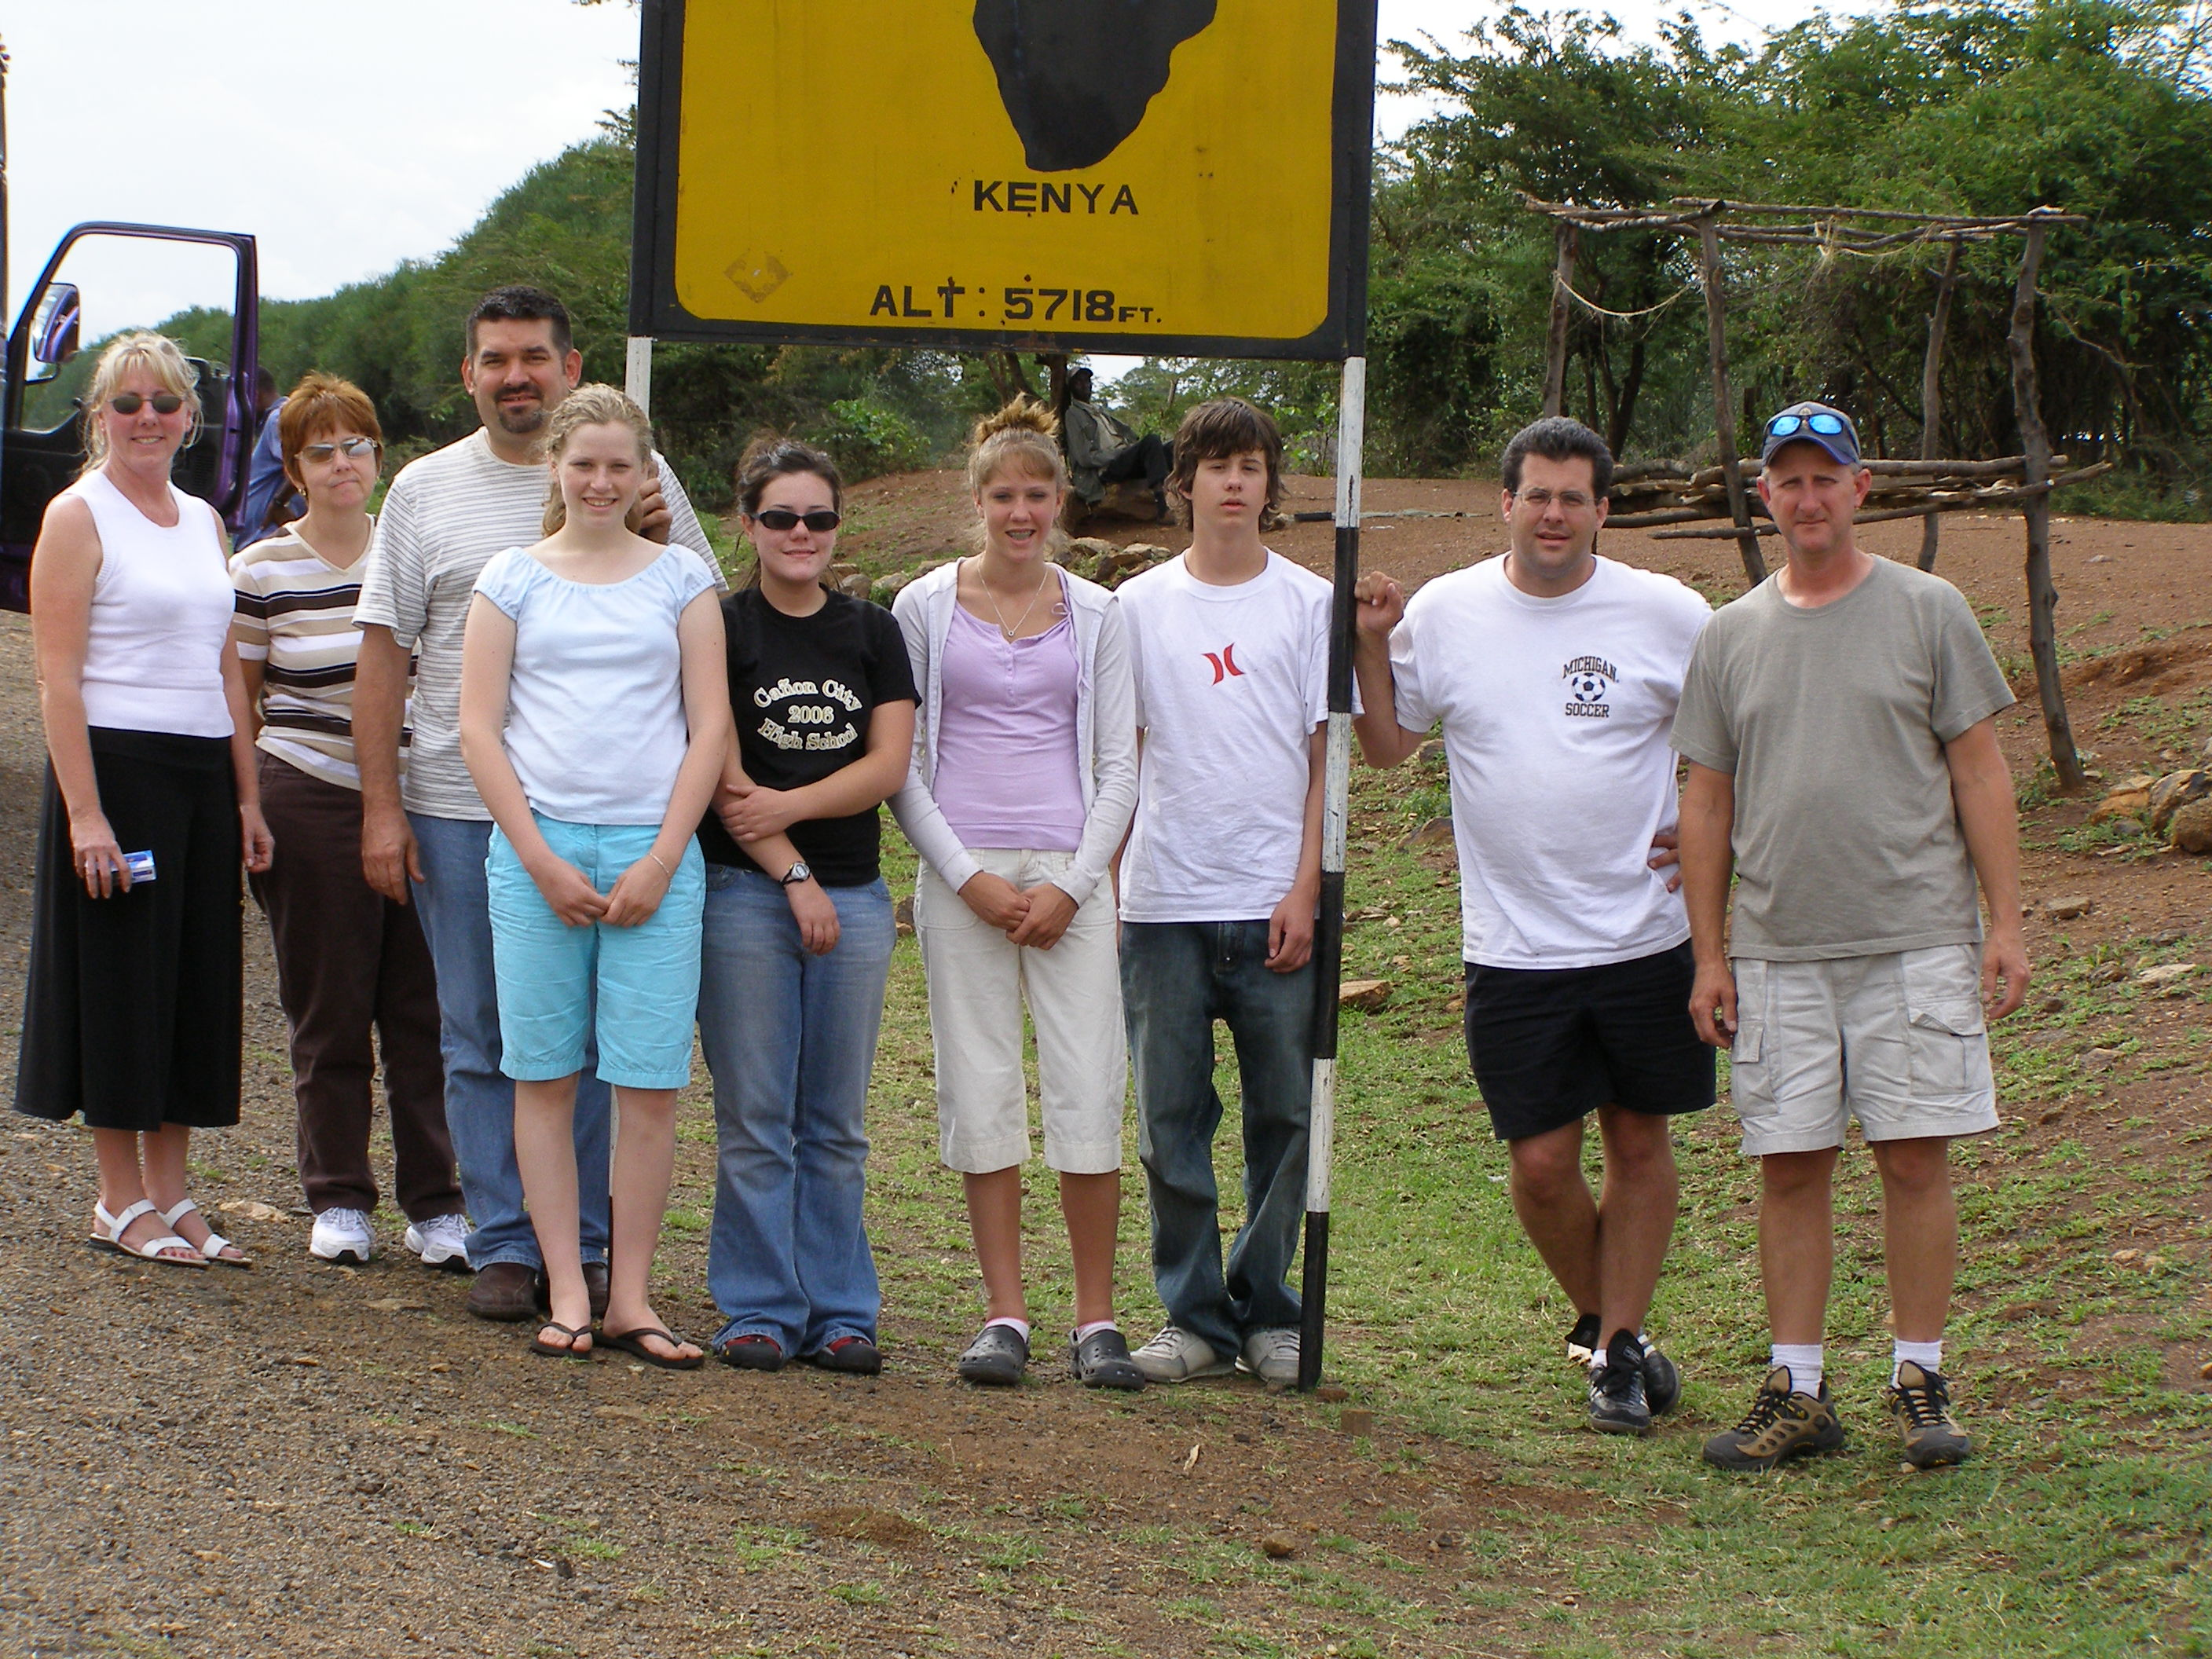 At the Equator in Kenya